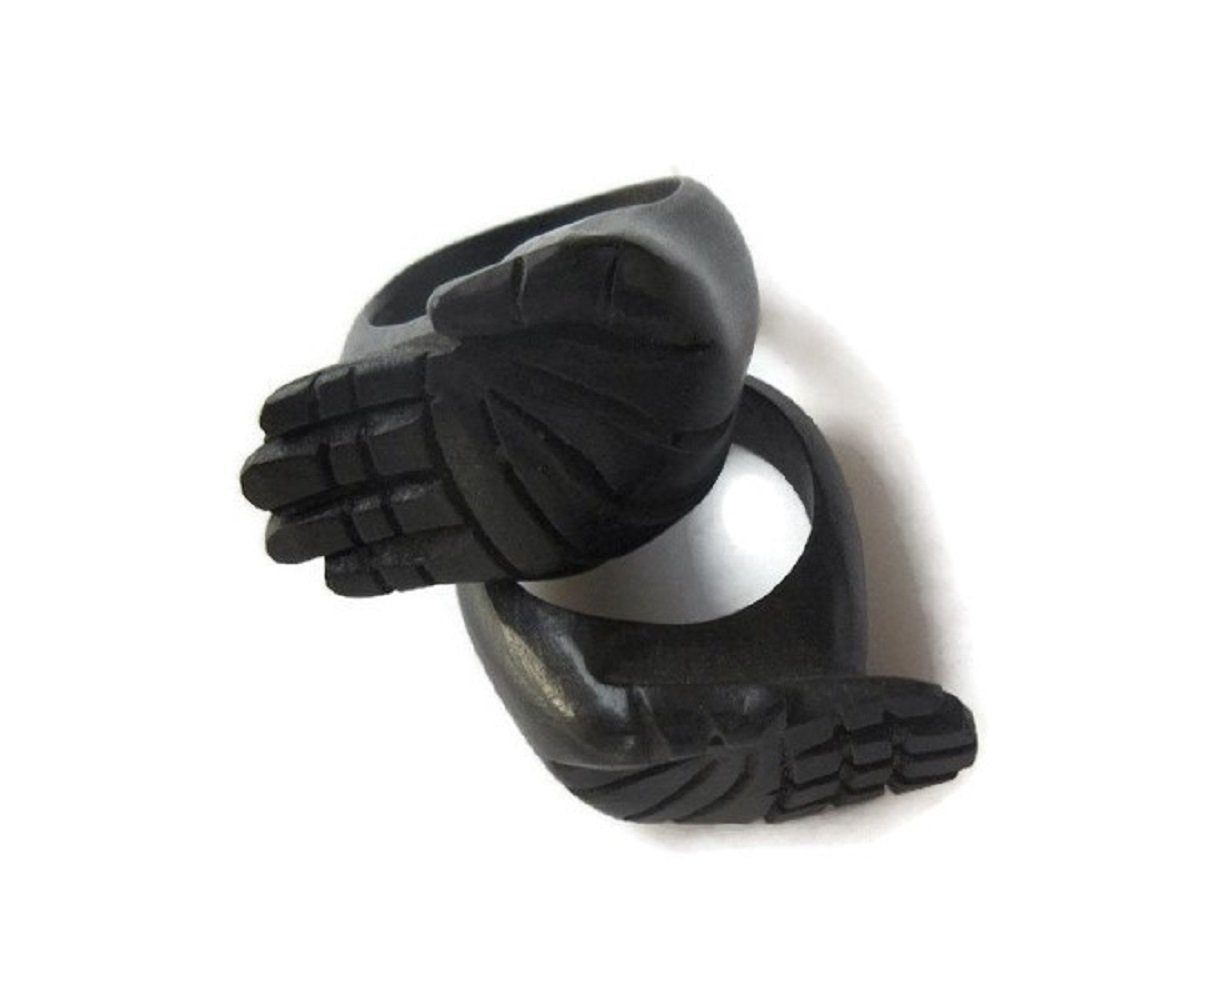 Hamsa Hand Ebony Wood Hand Carved Ring, Handmade Wooden Ring, Hamsa hand Finger Rings, GDS1043/20 (100 Pieces)